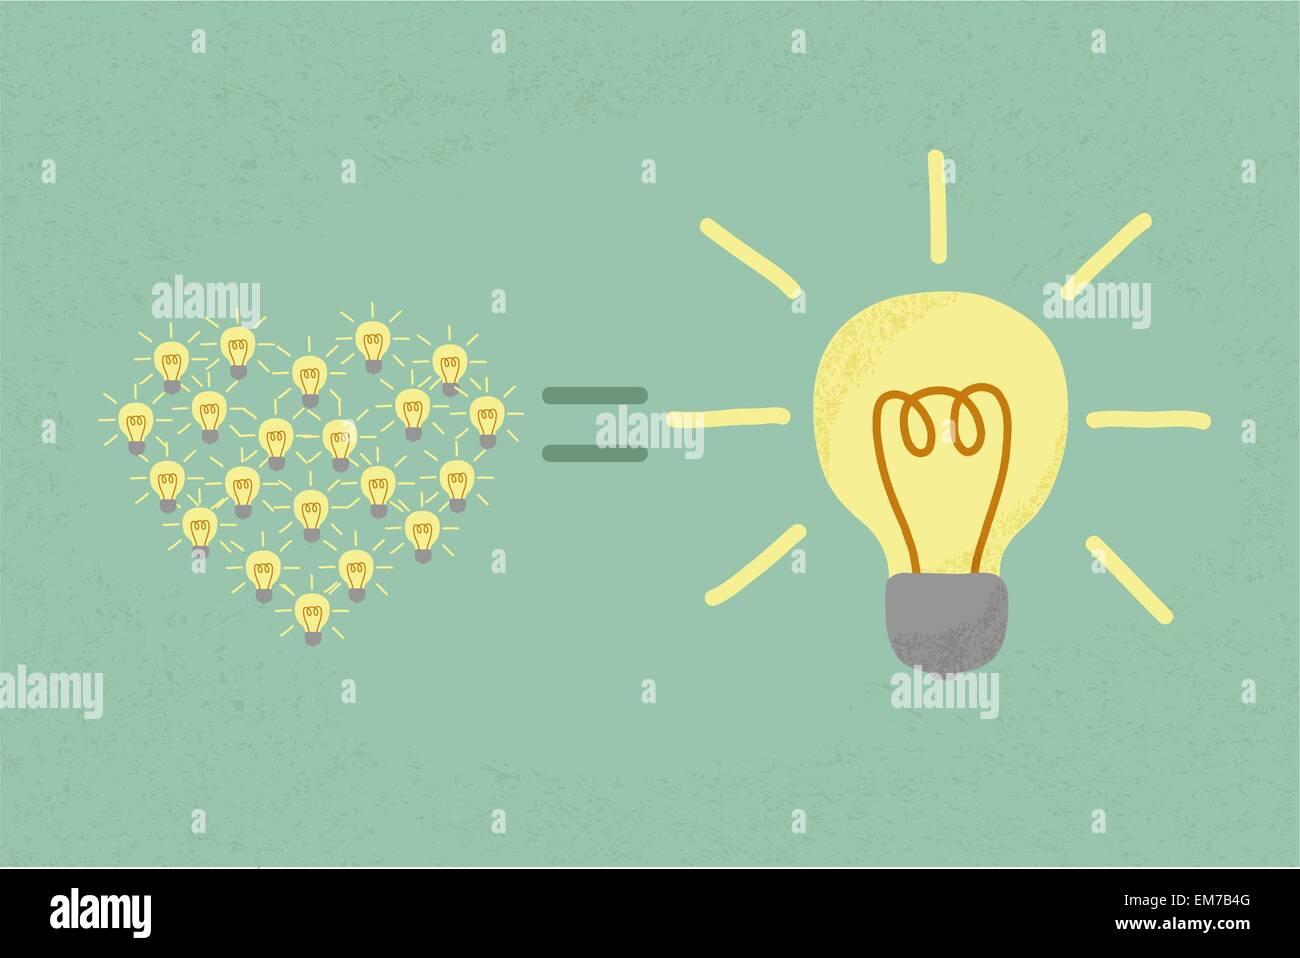 Many small ideas equal a big one idea , eps10 vector format Stock Vector